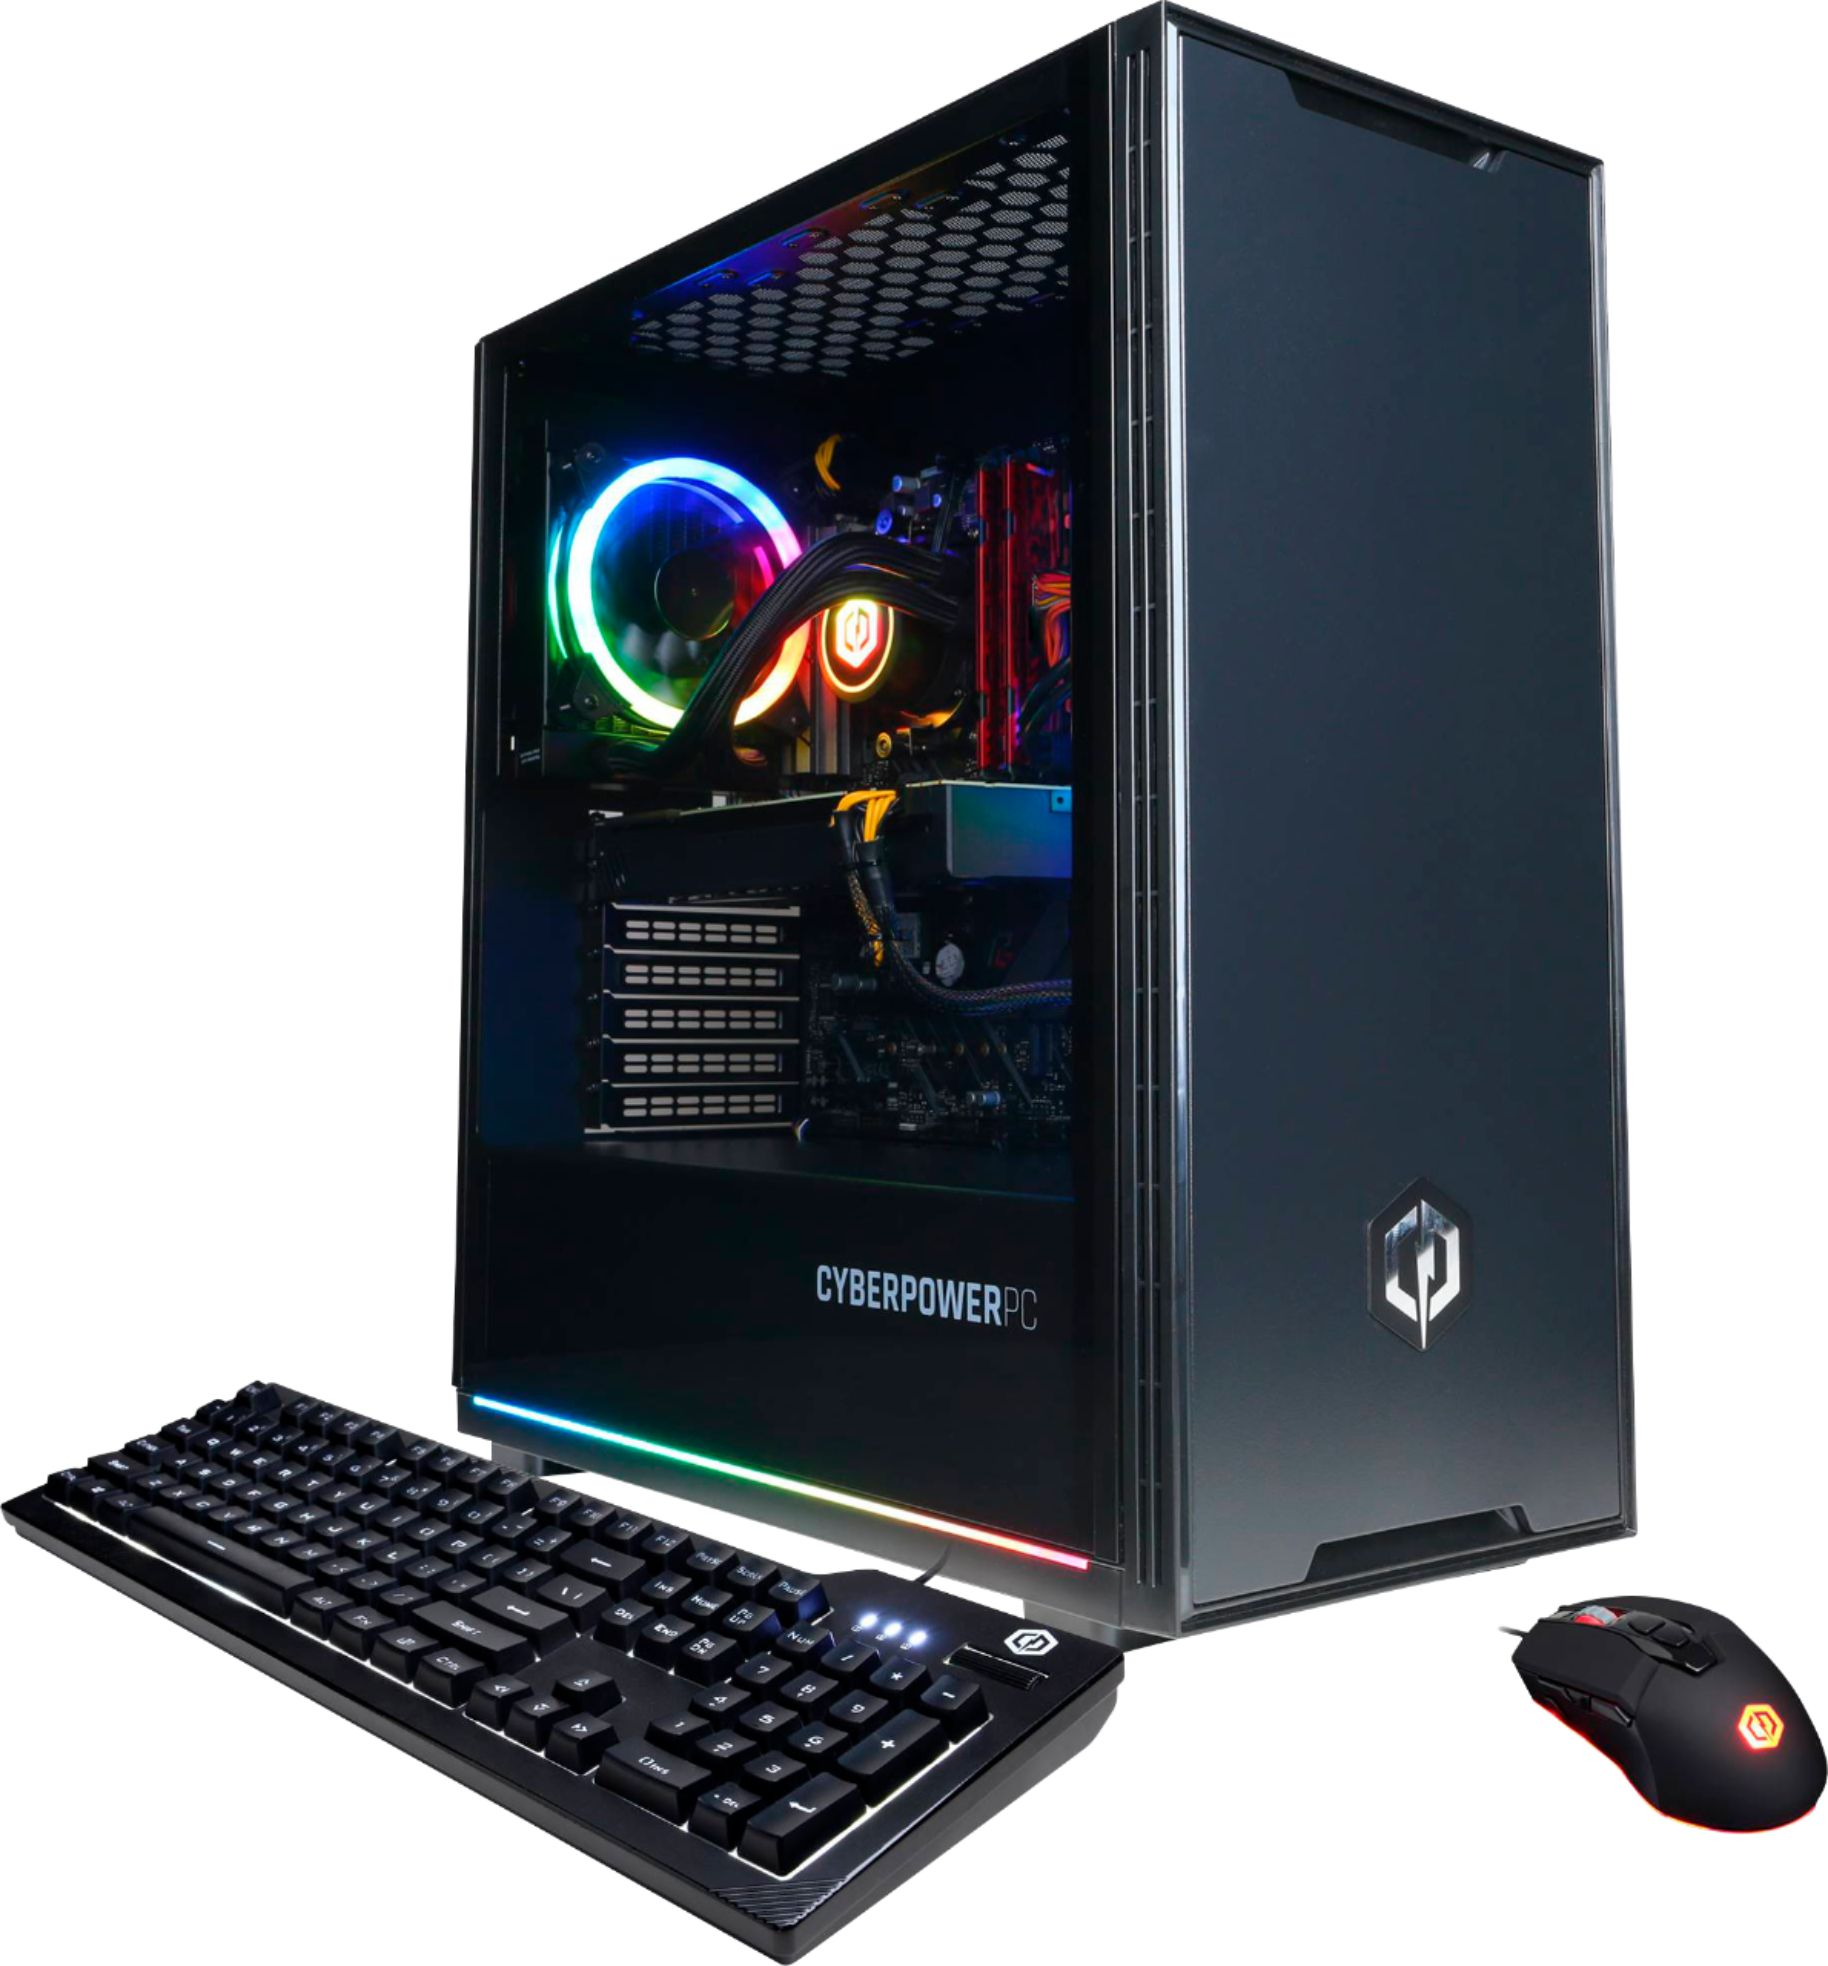 Angle Zoom. CyberPowerPC - Gamer Supreme Gaming Desktop - AMD Ryzen 9 3900X - 16GB Memory - NVIDIA GeForce RTX 3080 - 1TB SSD - Black.